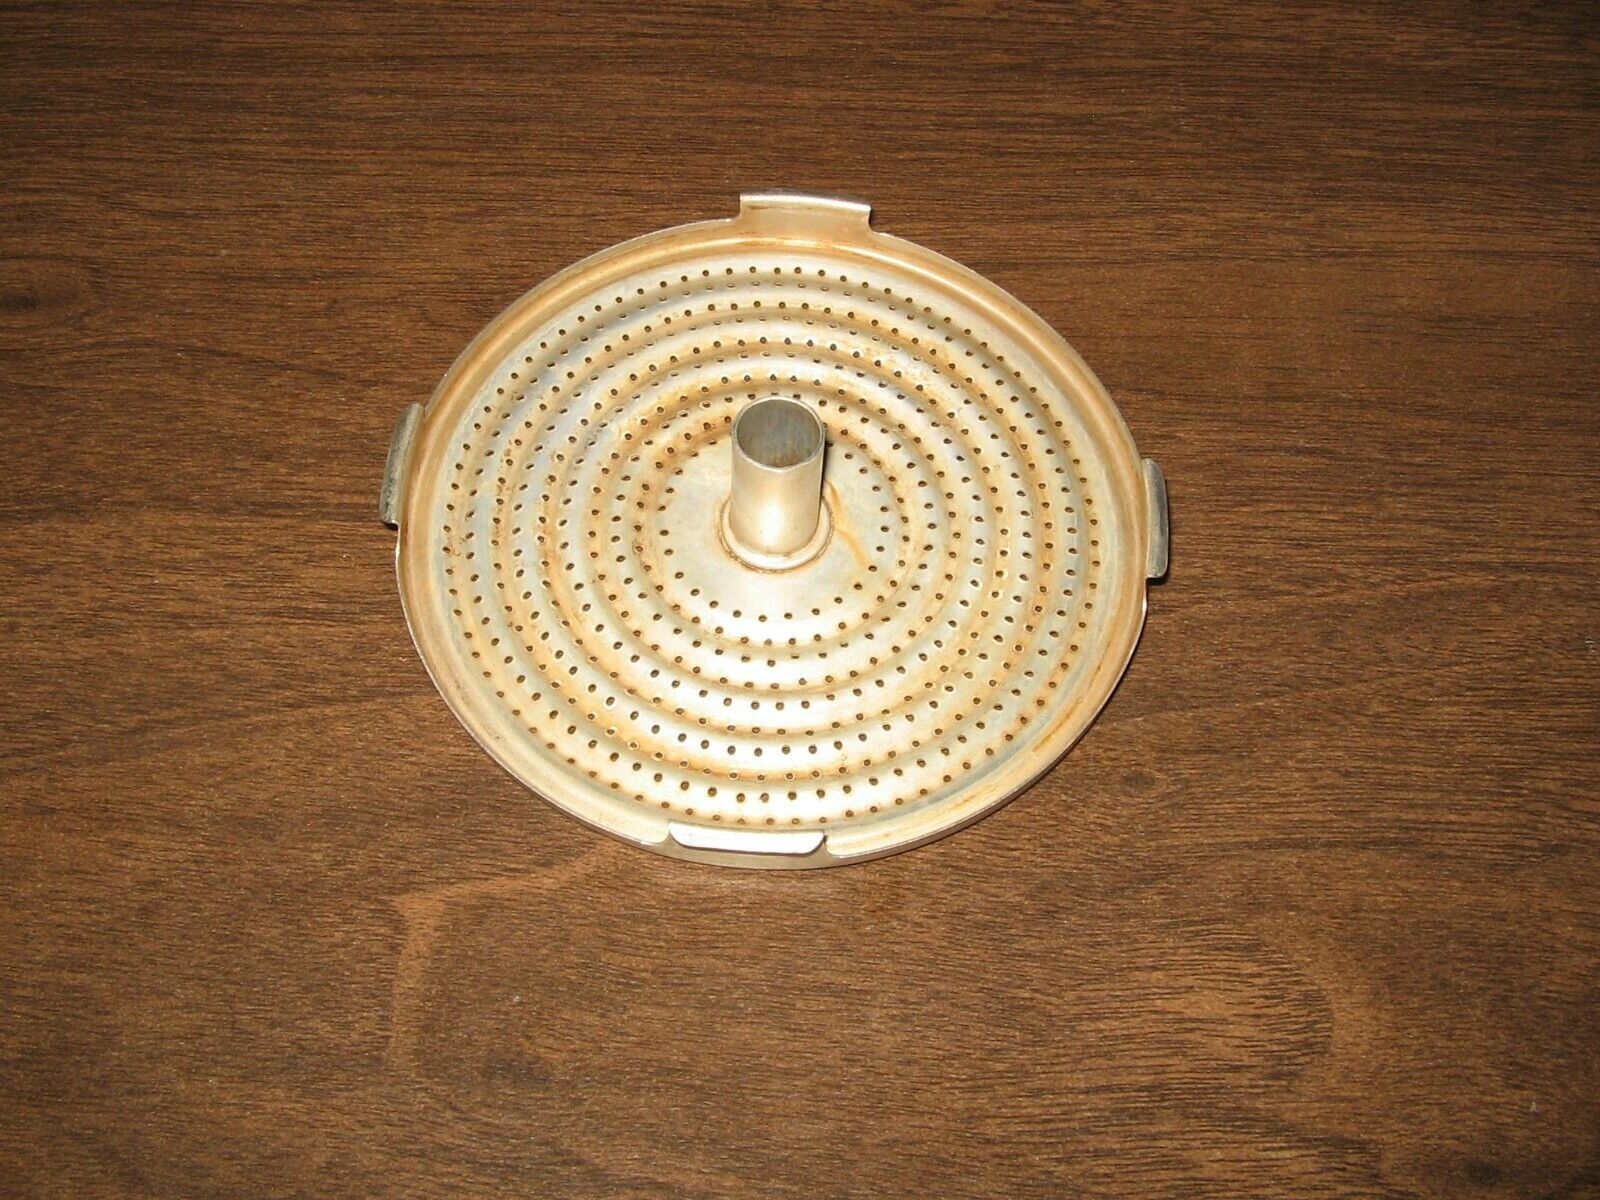 PYREX PERCULATOR BOTTOM STRAINER FOR FLAMEWARE 9 CUP COFFEE POT-USED CONDITION - $9.50